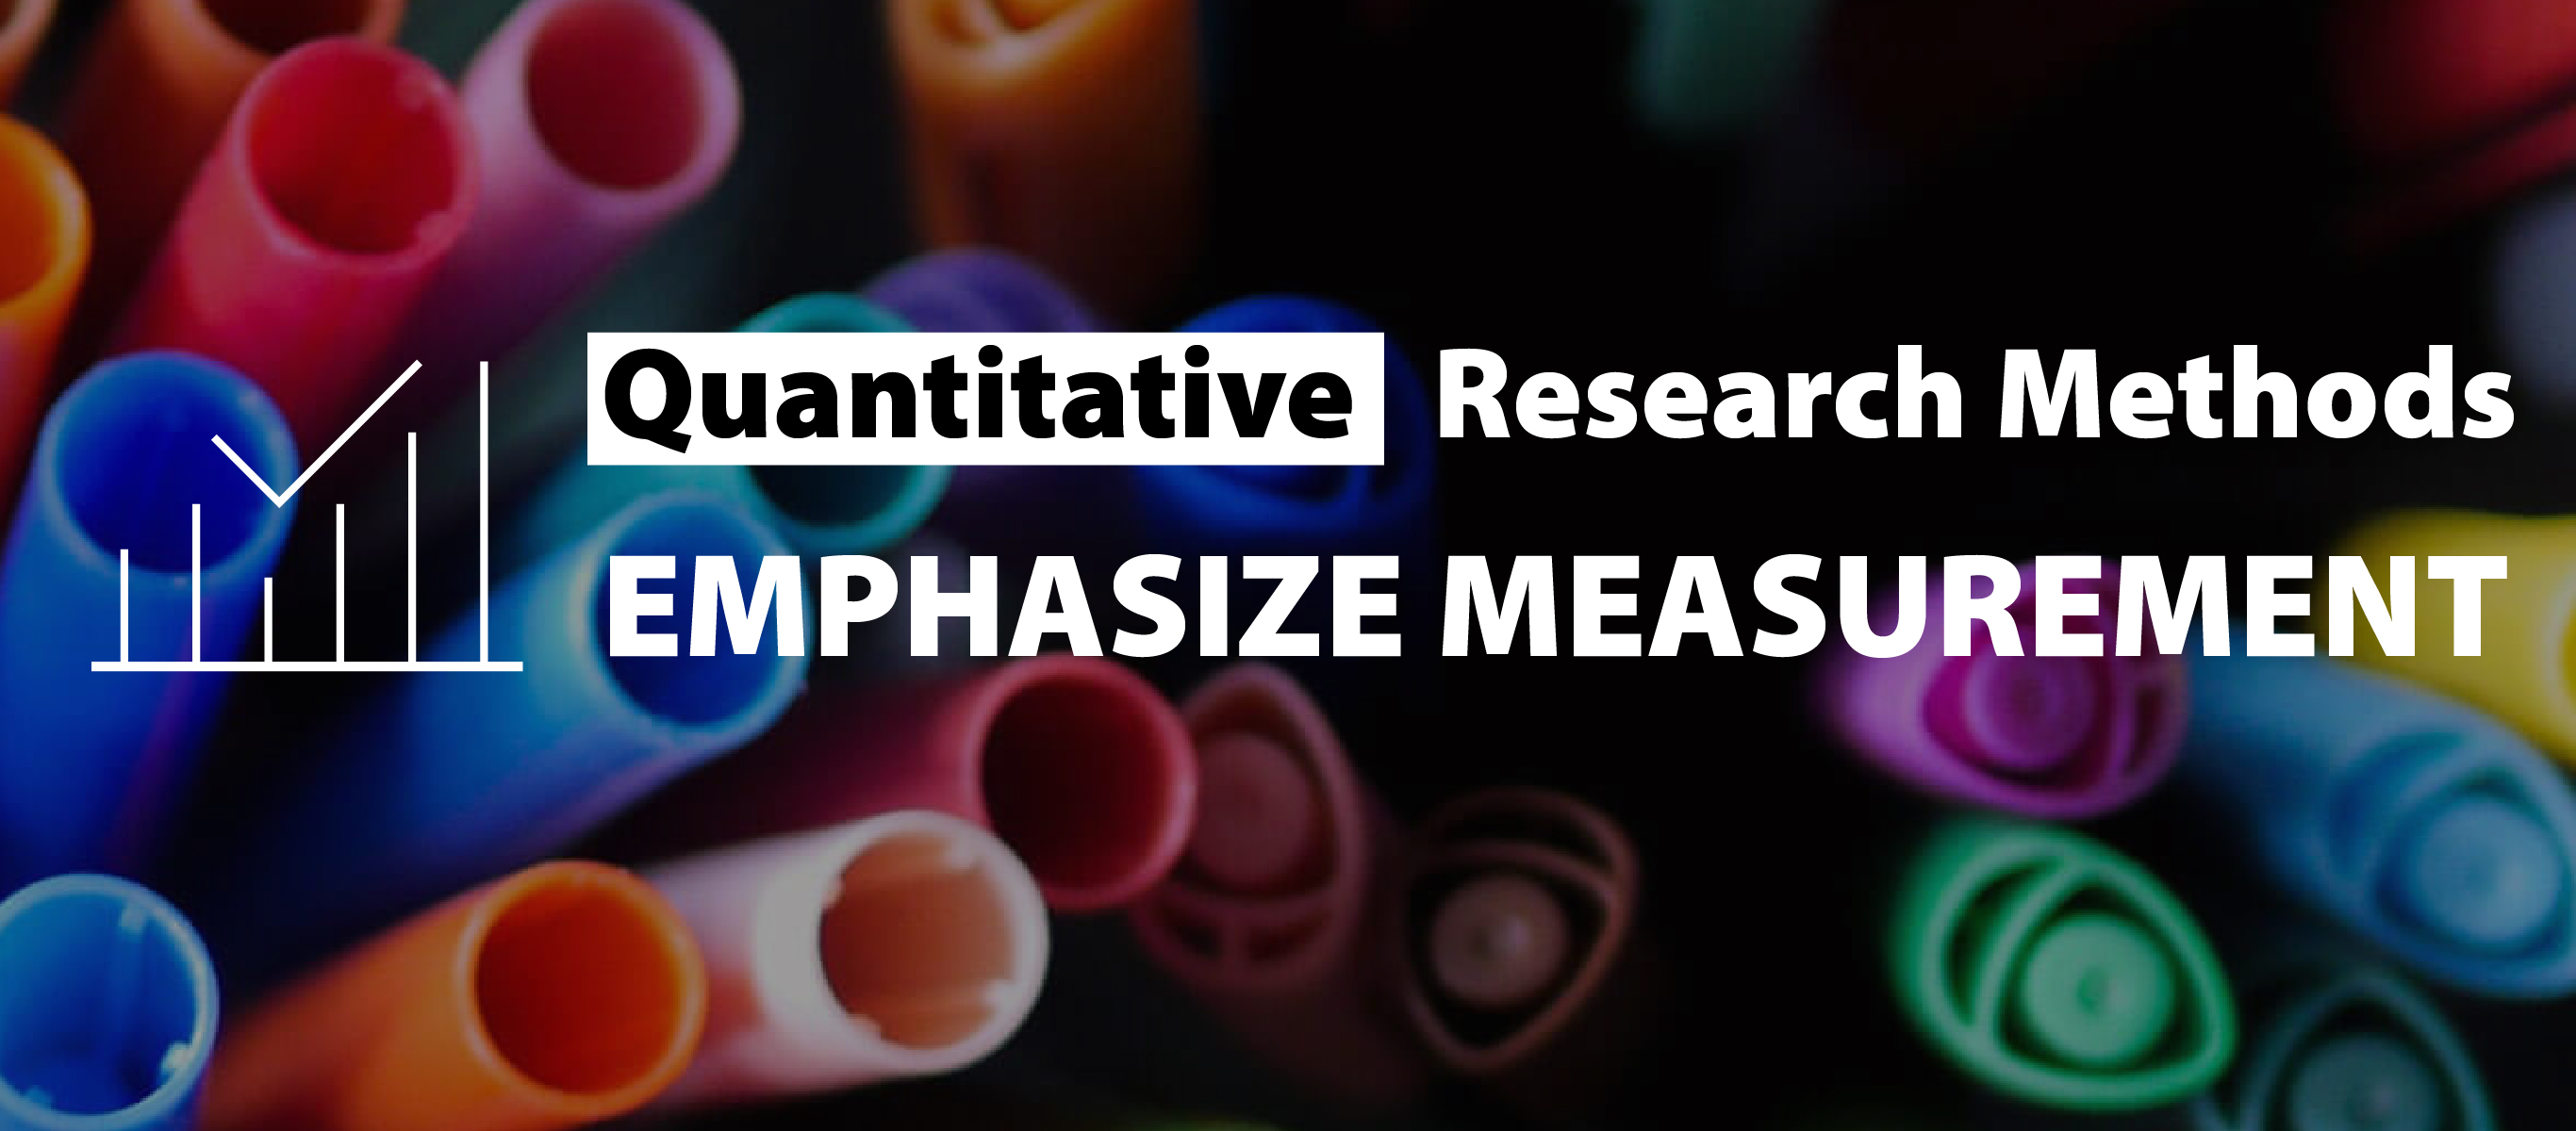 Quantitative Research Methods Emphasize Measurement